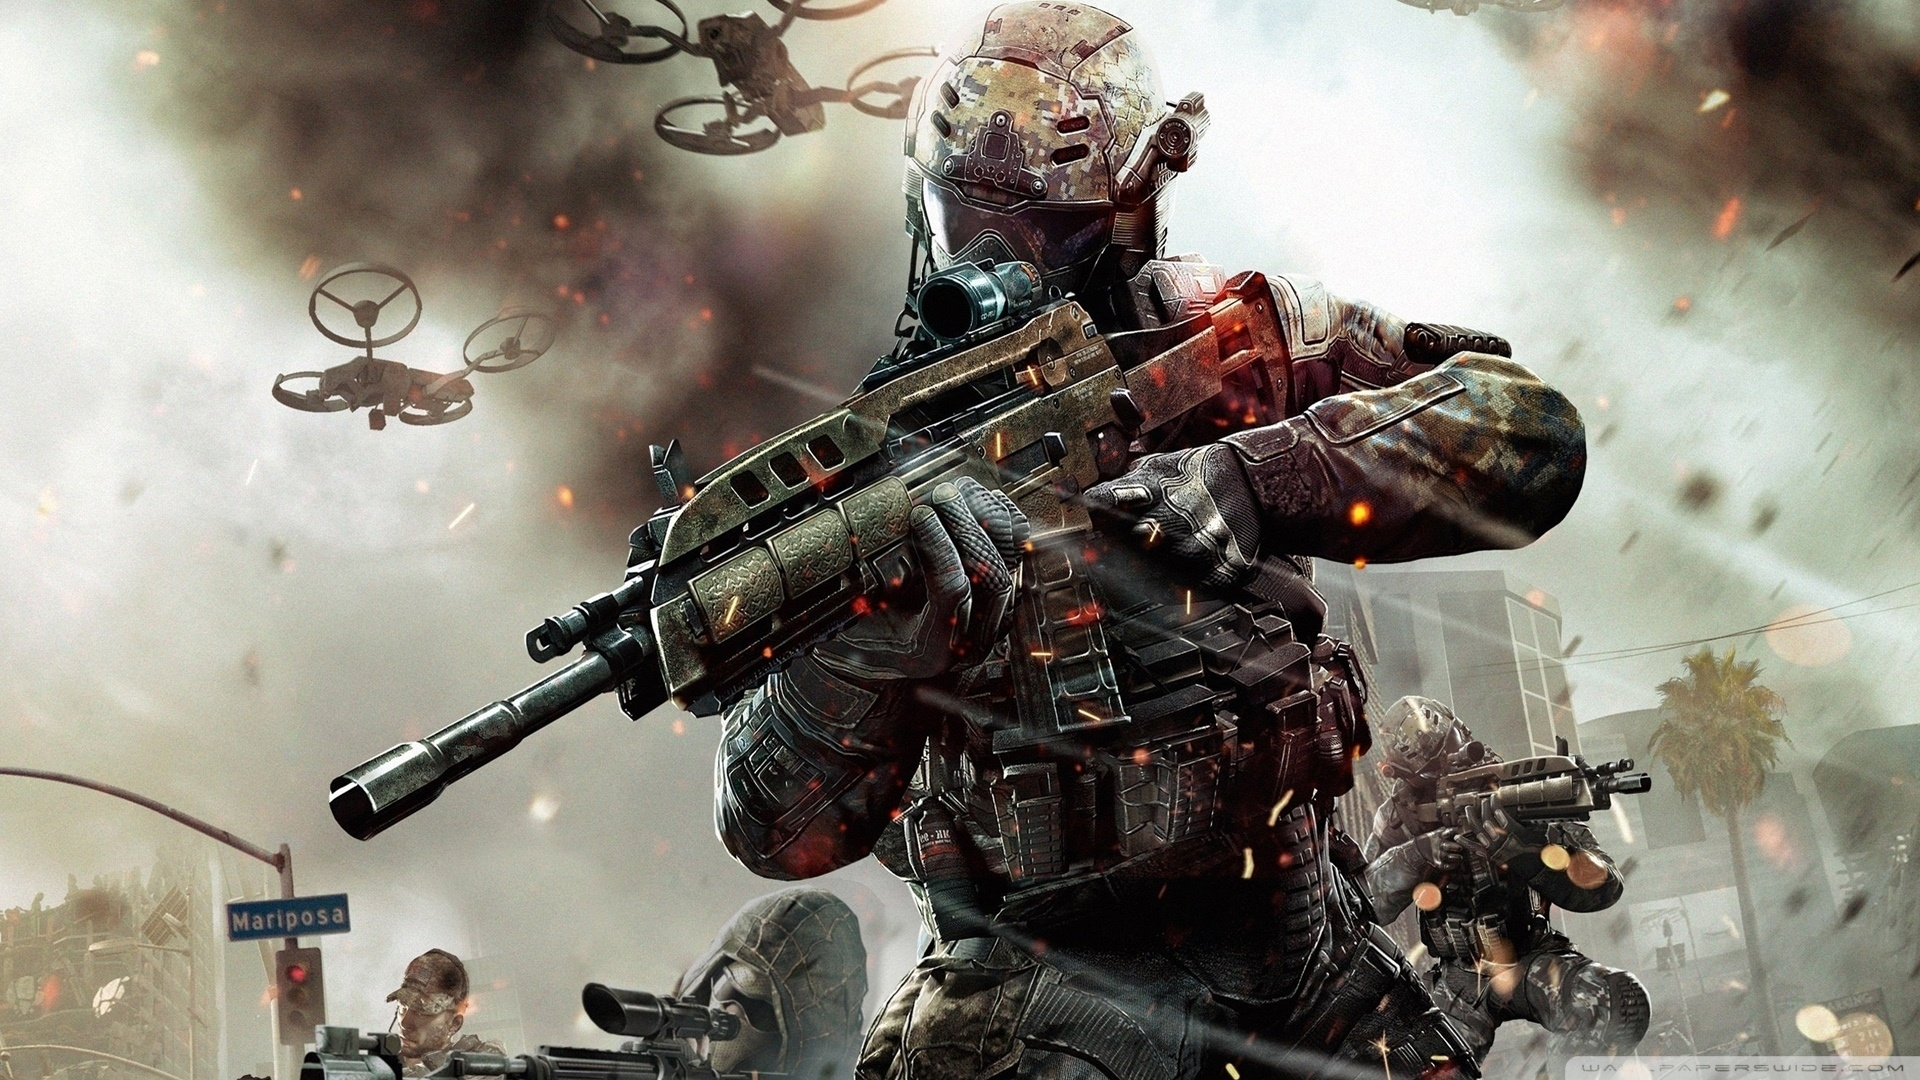 call of duty black ops 2 game 2013-wallpaper-1920x1080 - 10 000